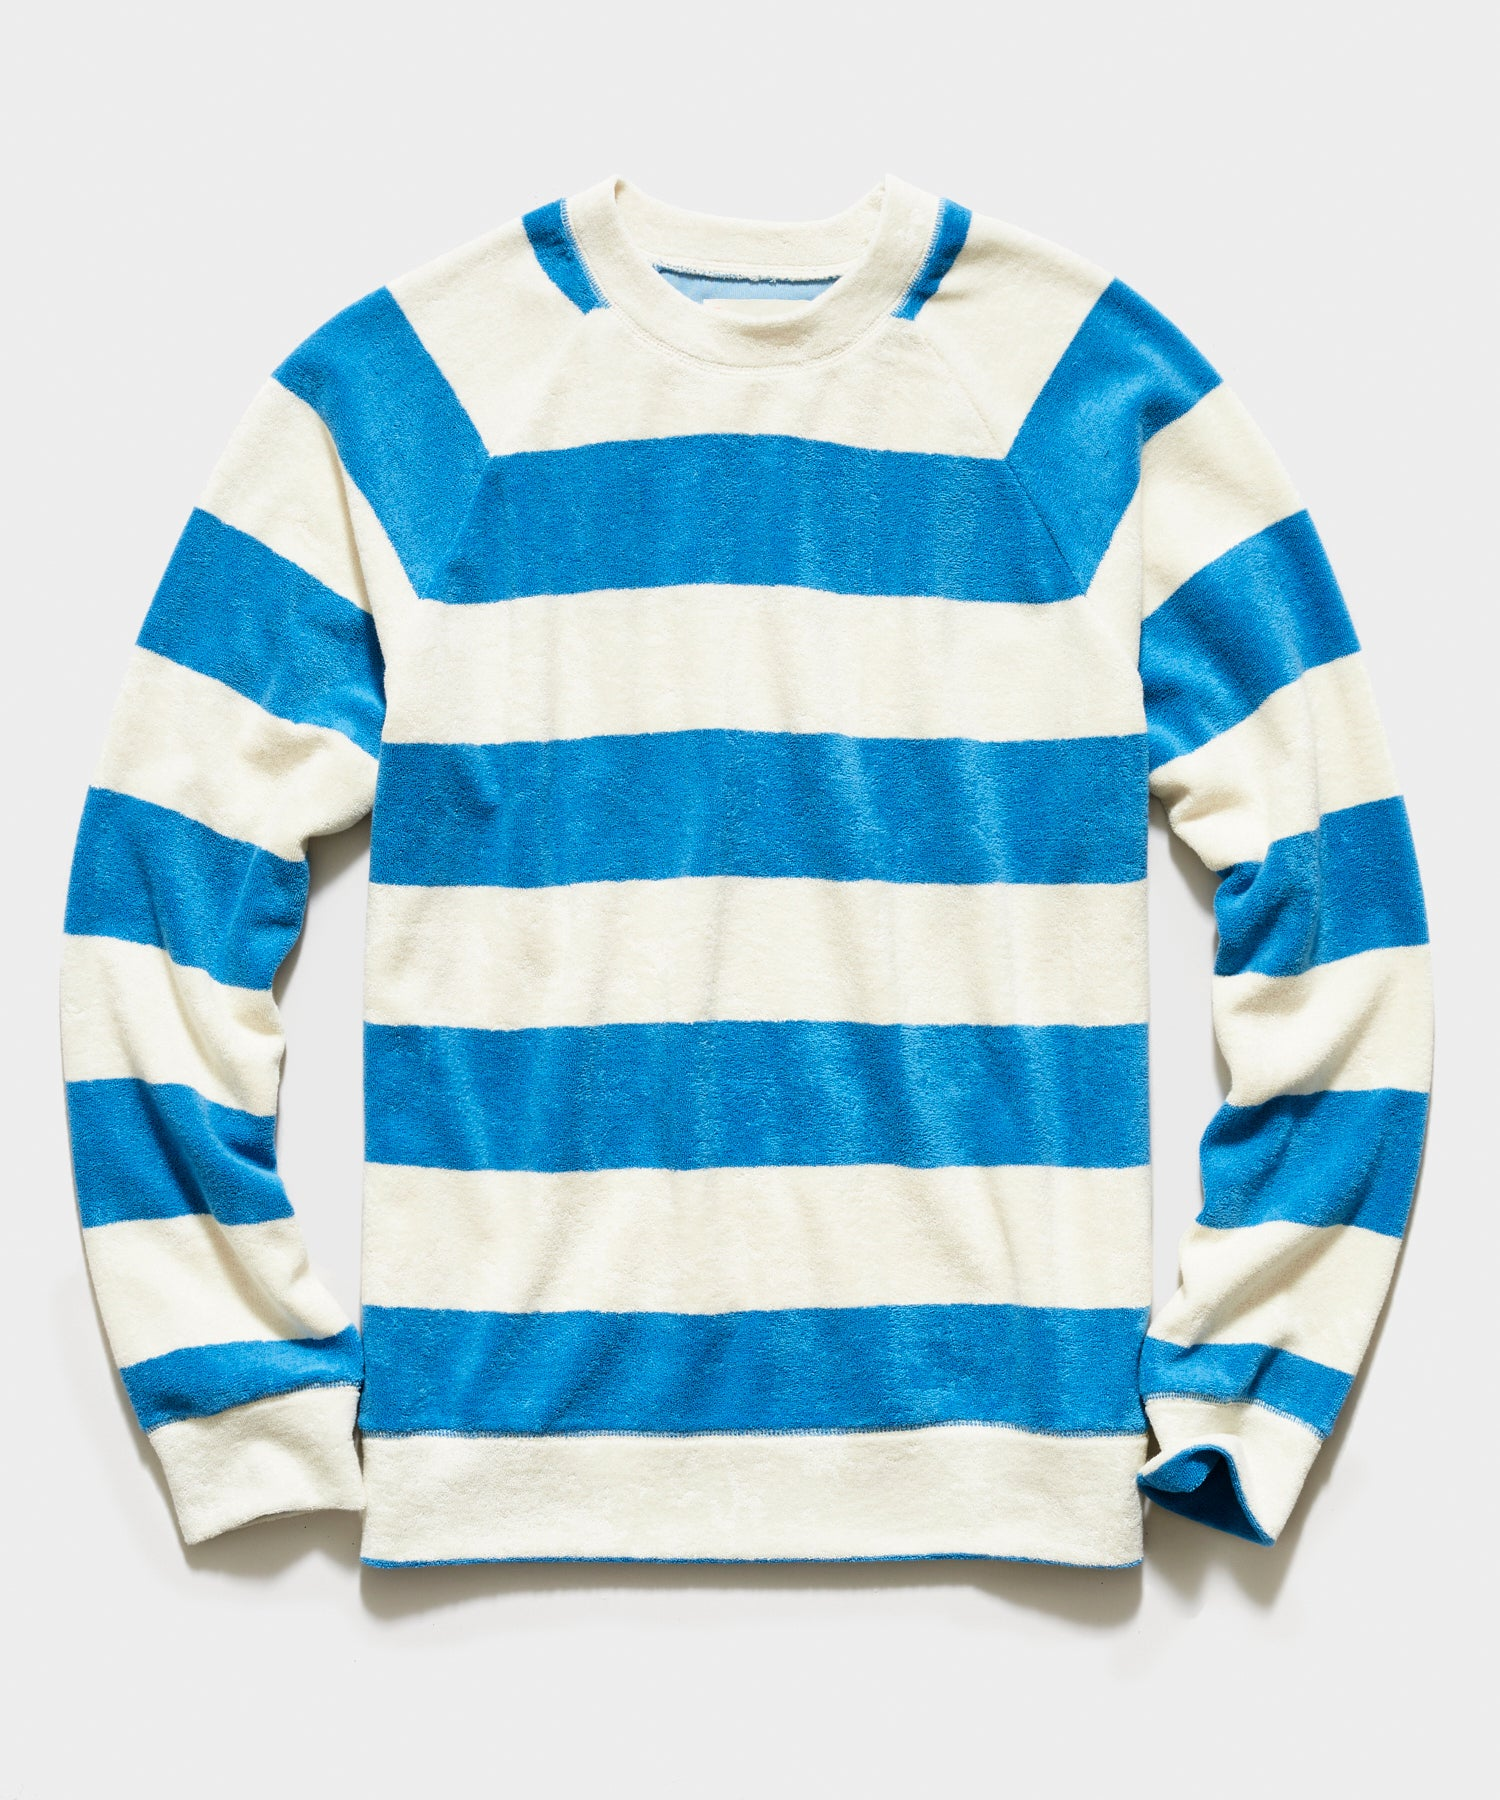 La Paz Cunha Towel Sweatshirt in Blue Stripe